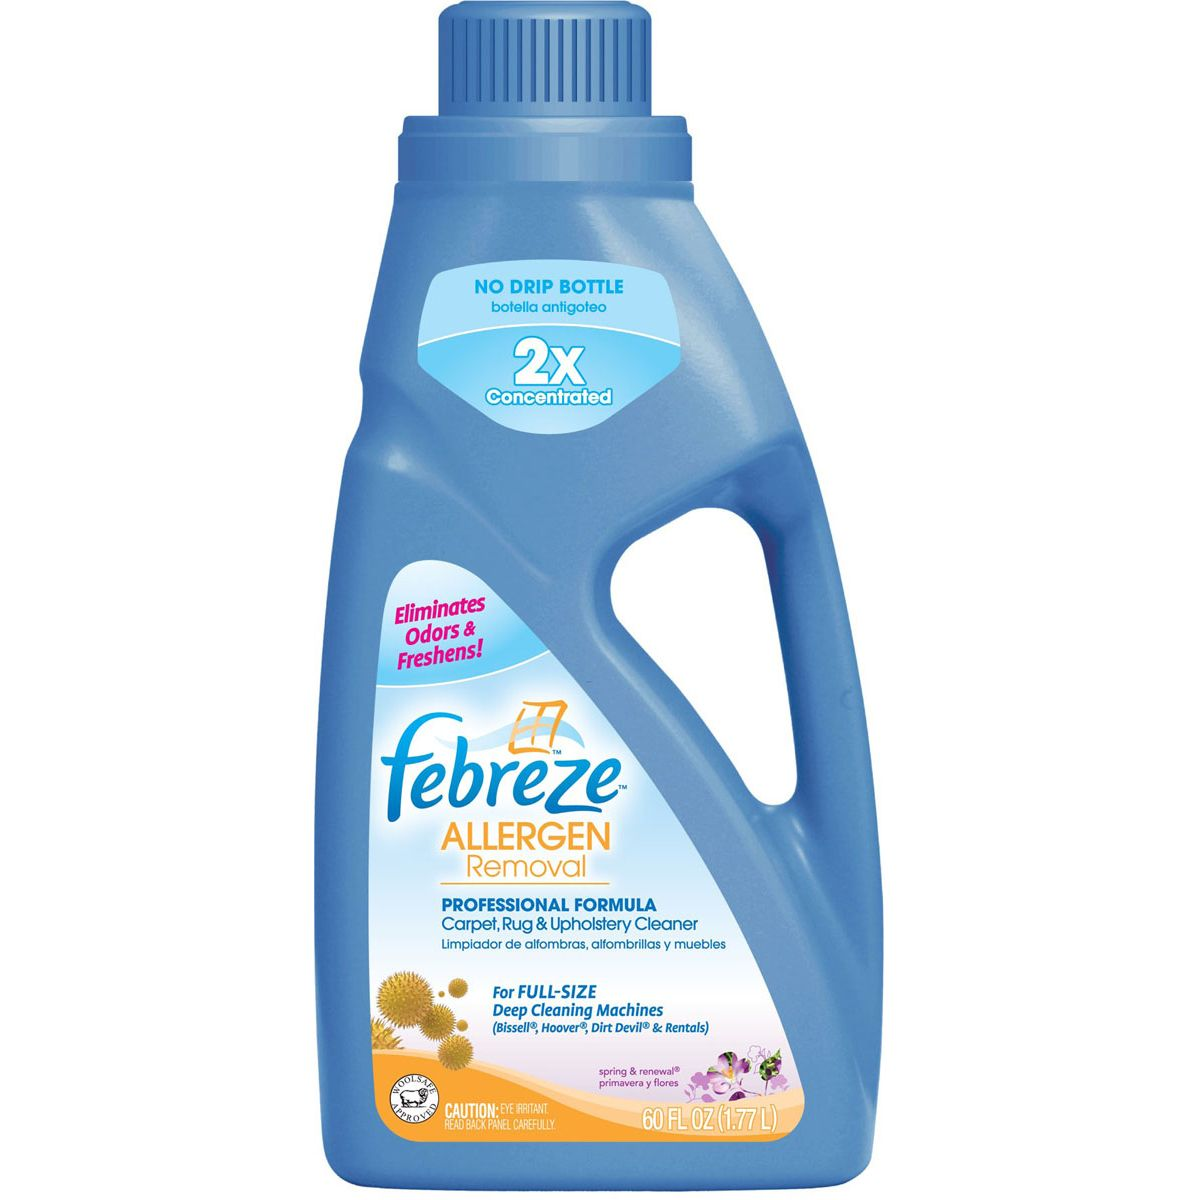 Febreze Allergen Removal Solution for Carpets